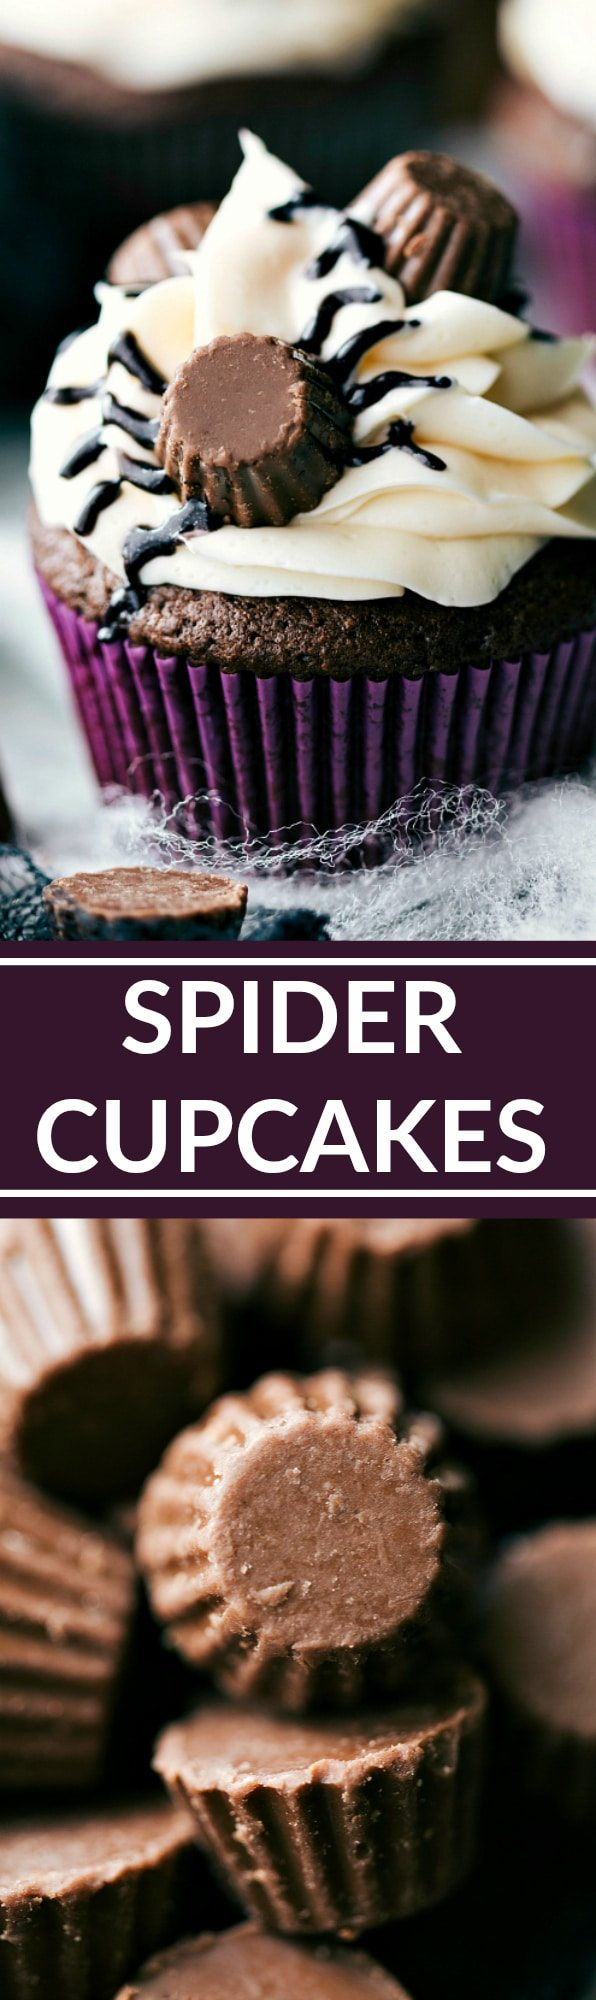 Easy decorated Spider Cupcakes. Recipe and VIDEO TUTORIAL via chelseasmessyapron.com